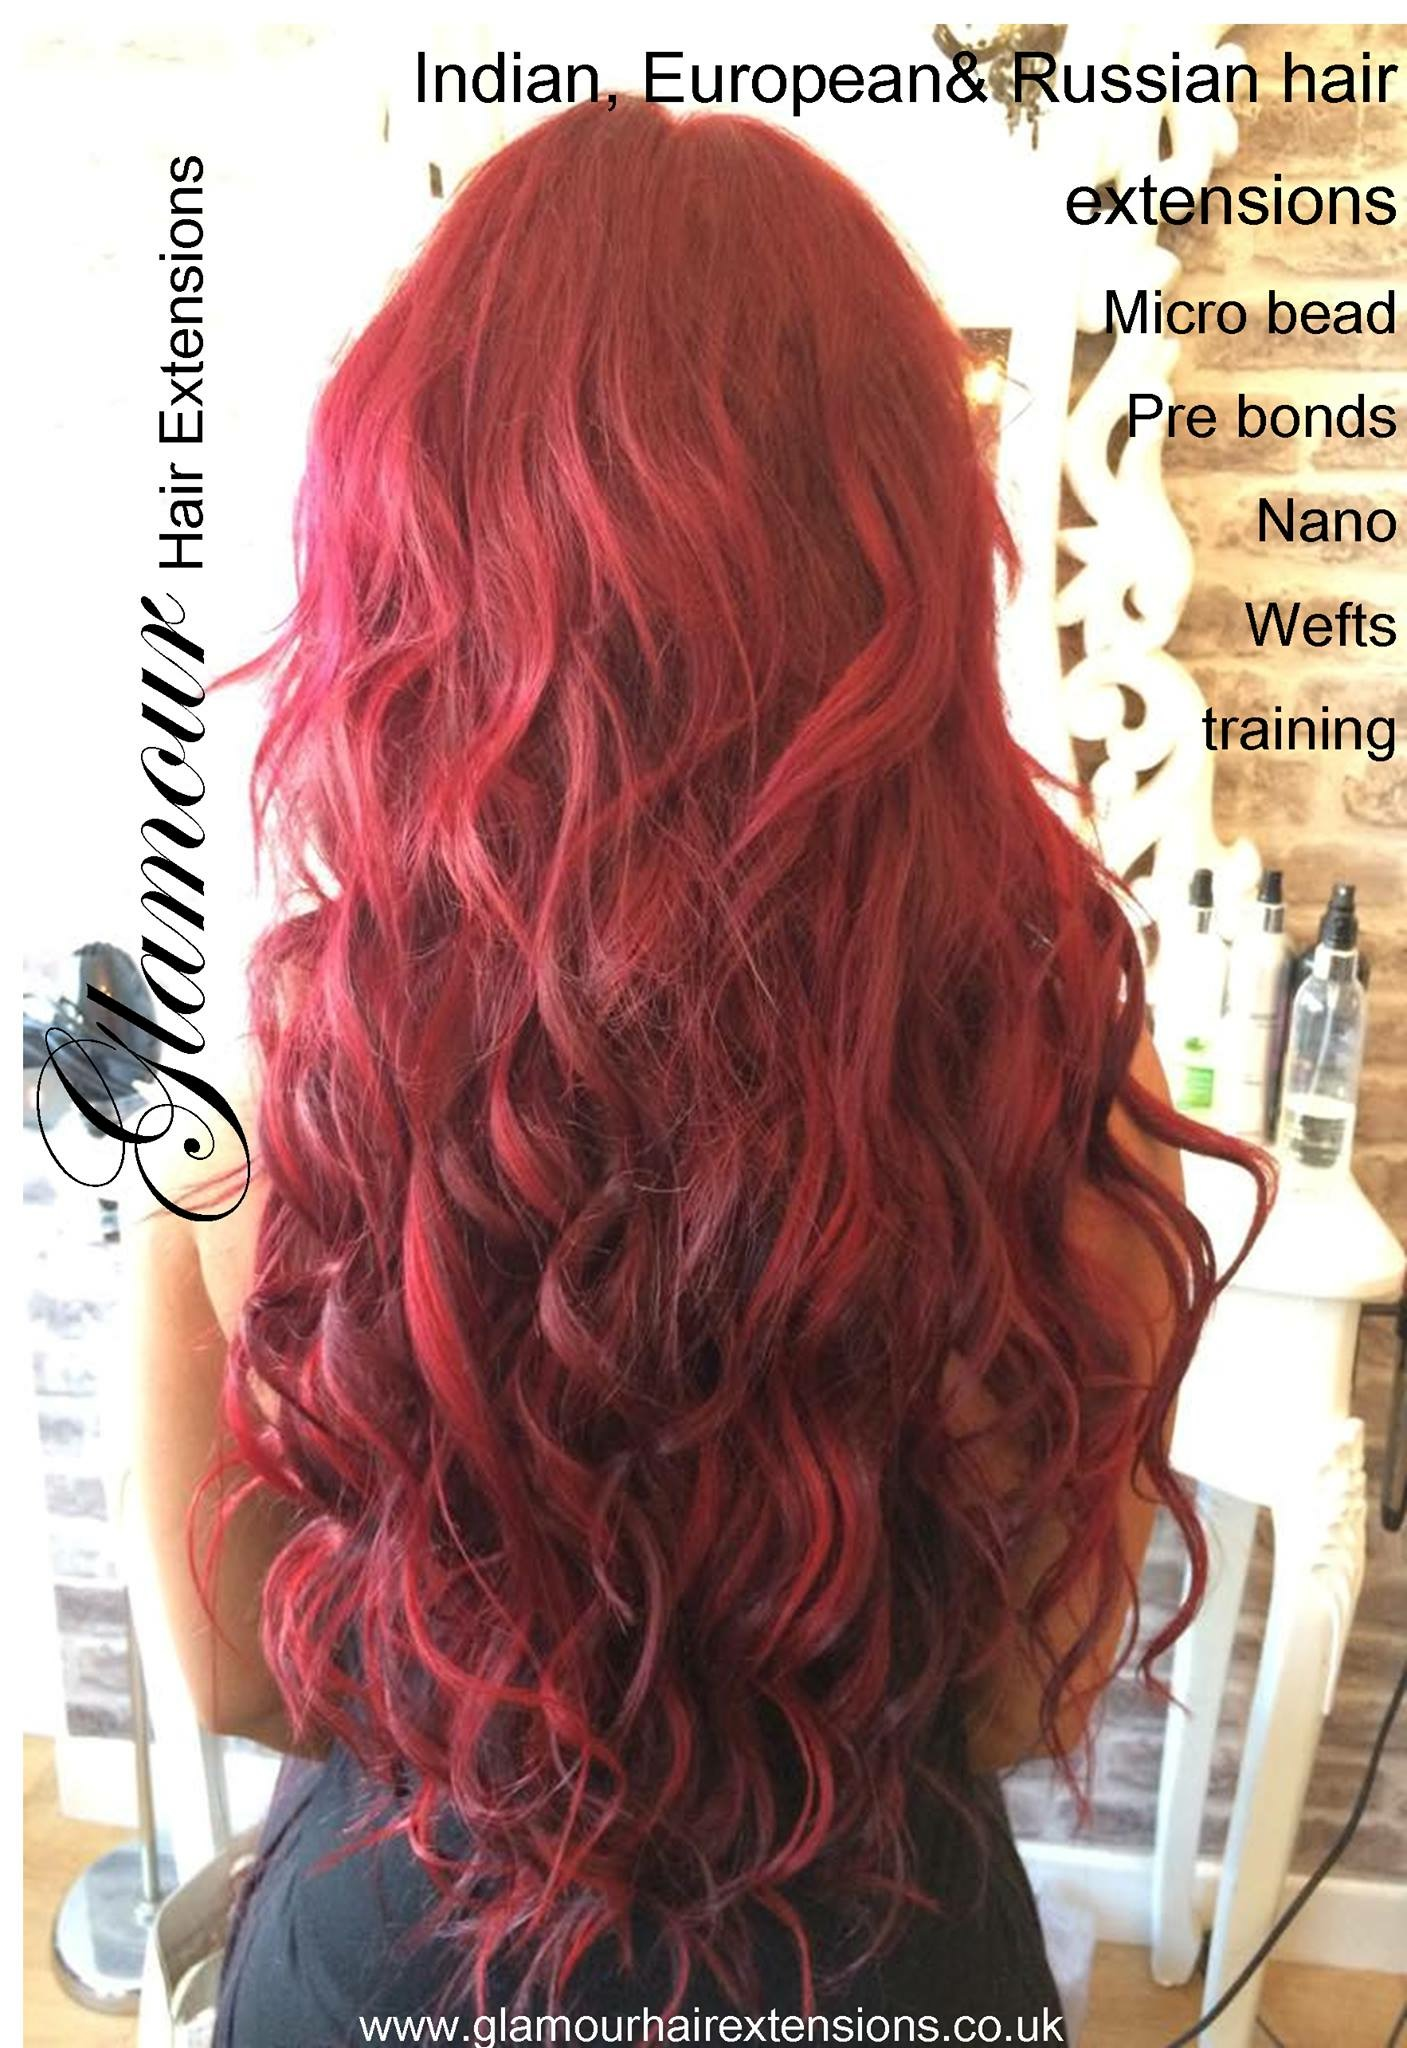 Hair Extensions And Training Cannock Prestige Hair Extensions